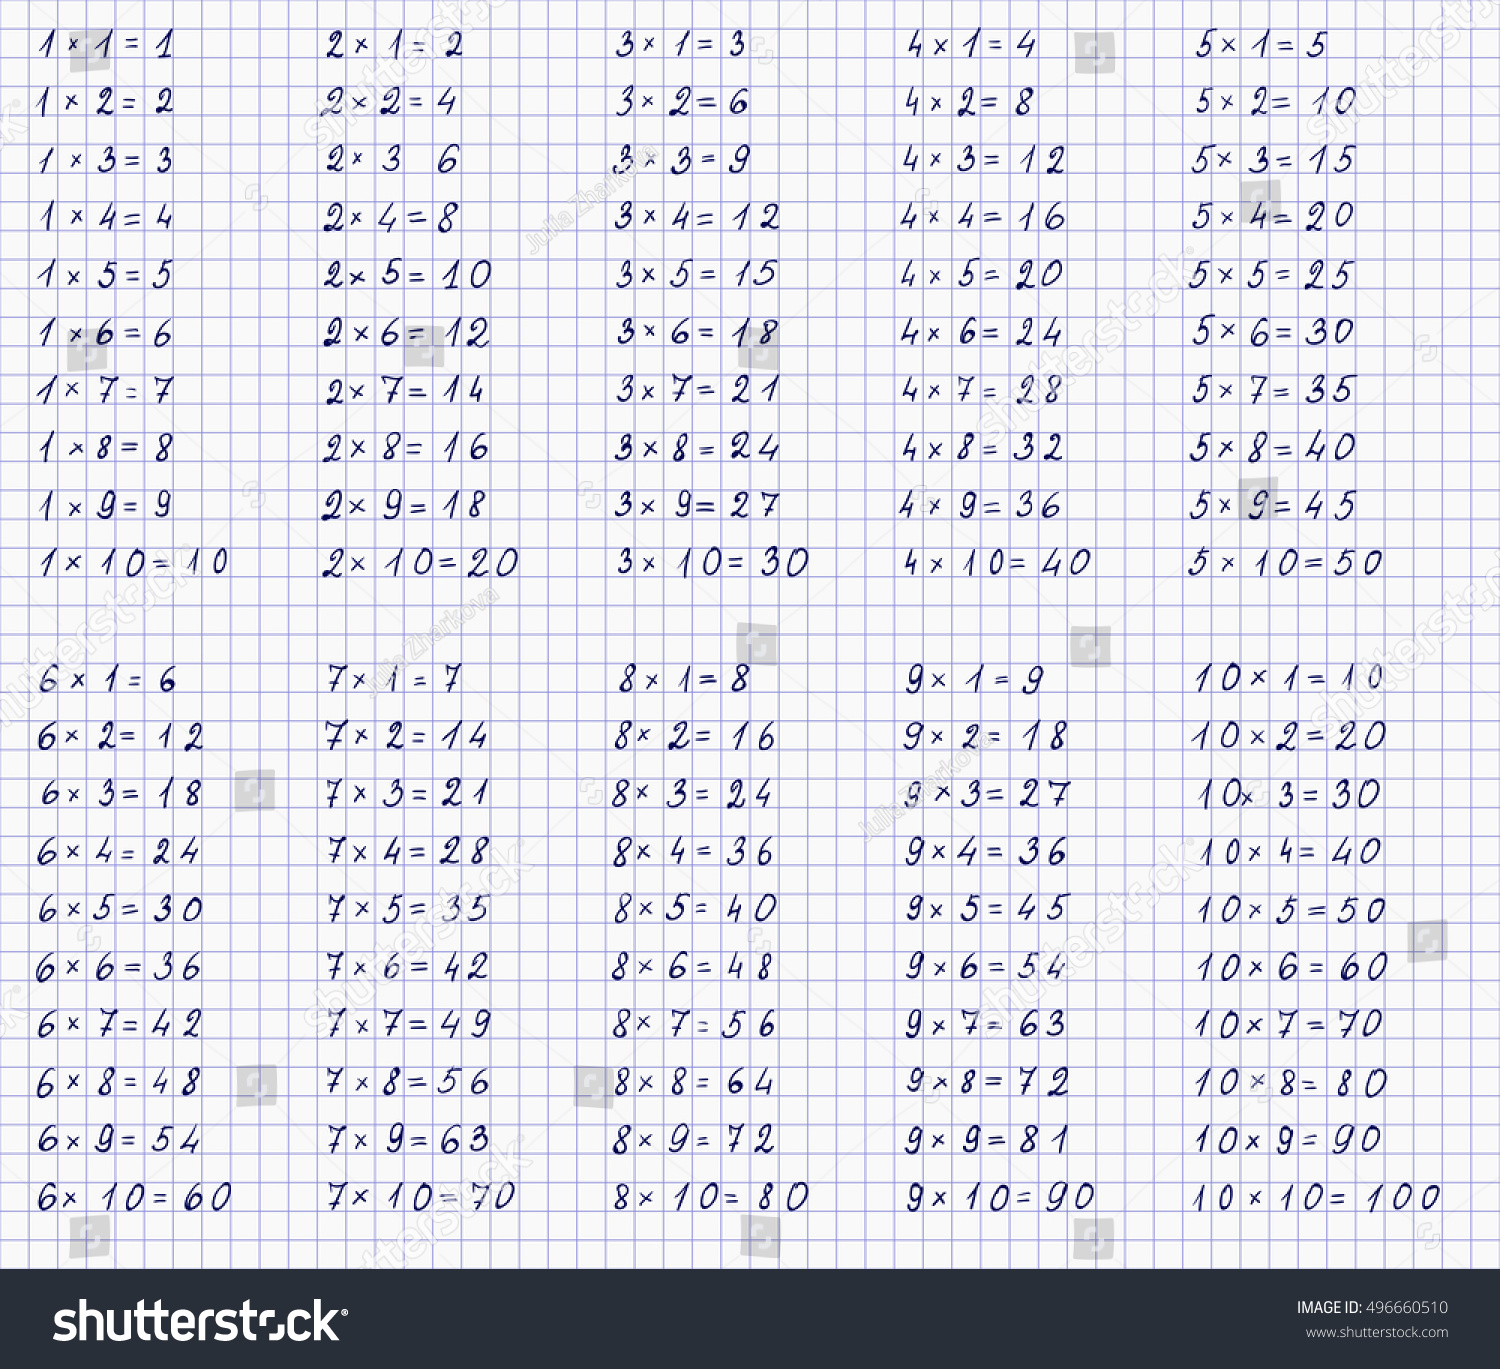 Online multiplication table choice image periodic table images notebook sheet hand written multiplication table stock vector notebook sheet with hand written multiplication table seamless gamestrikefo Images